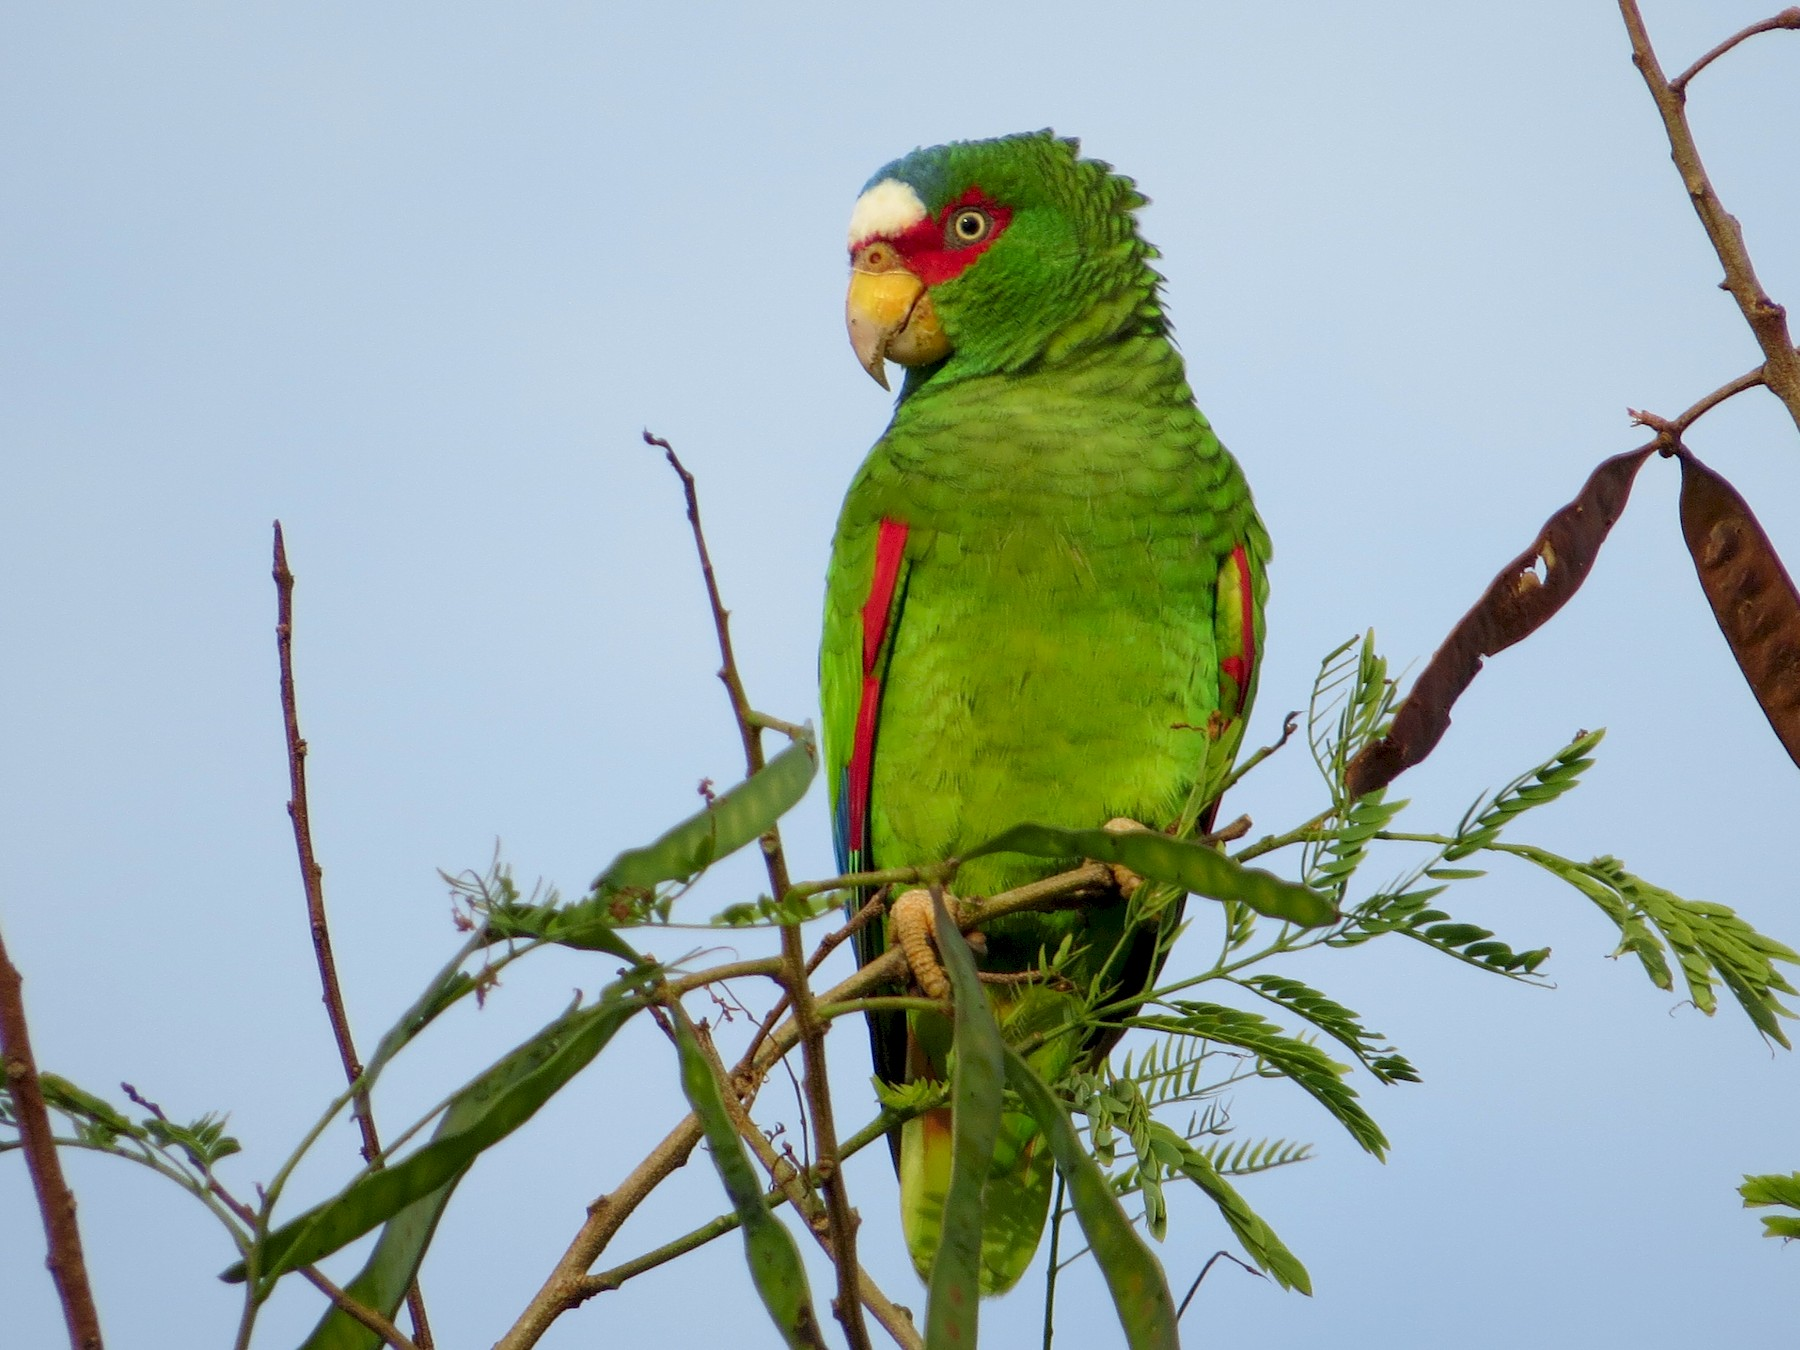 White-fronted Parrot - Mark Goodwin